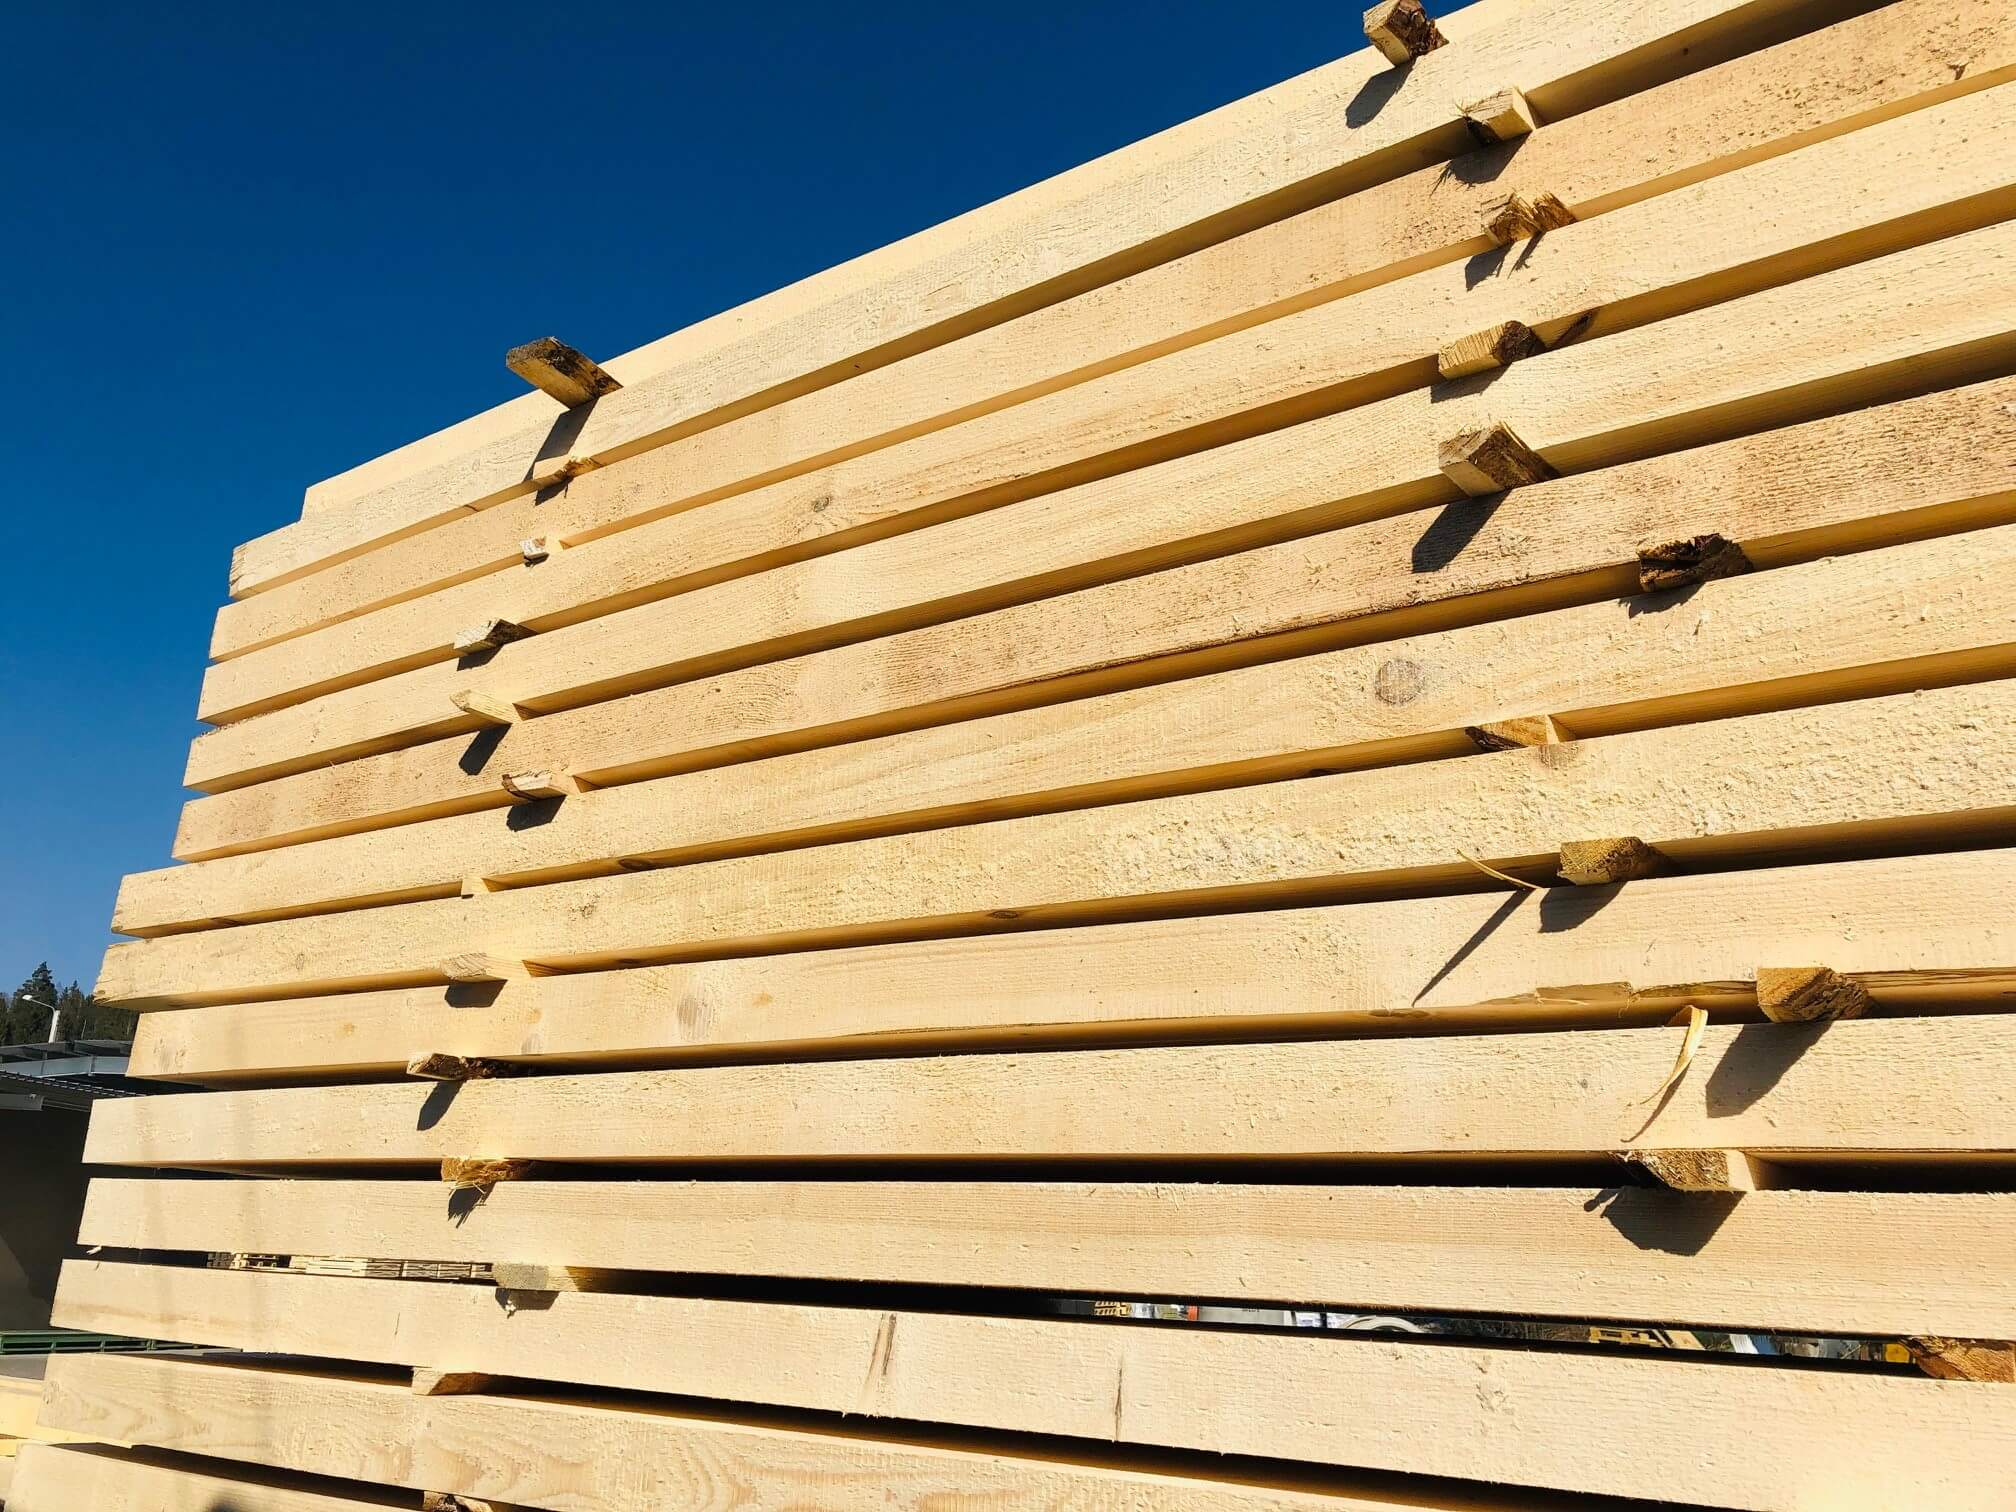 Square sawn timber for pallet production